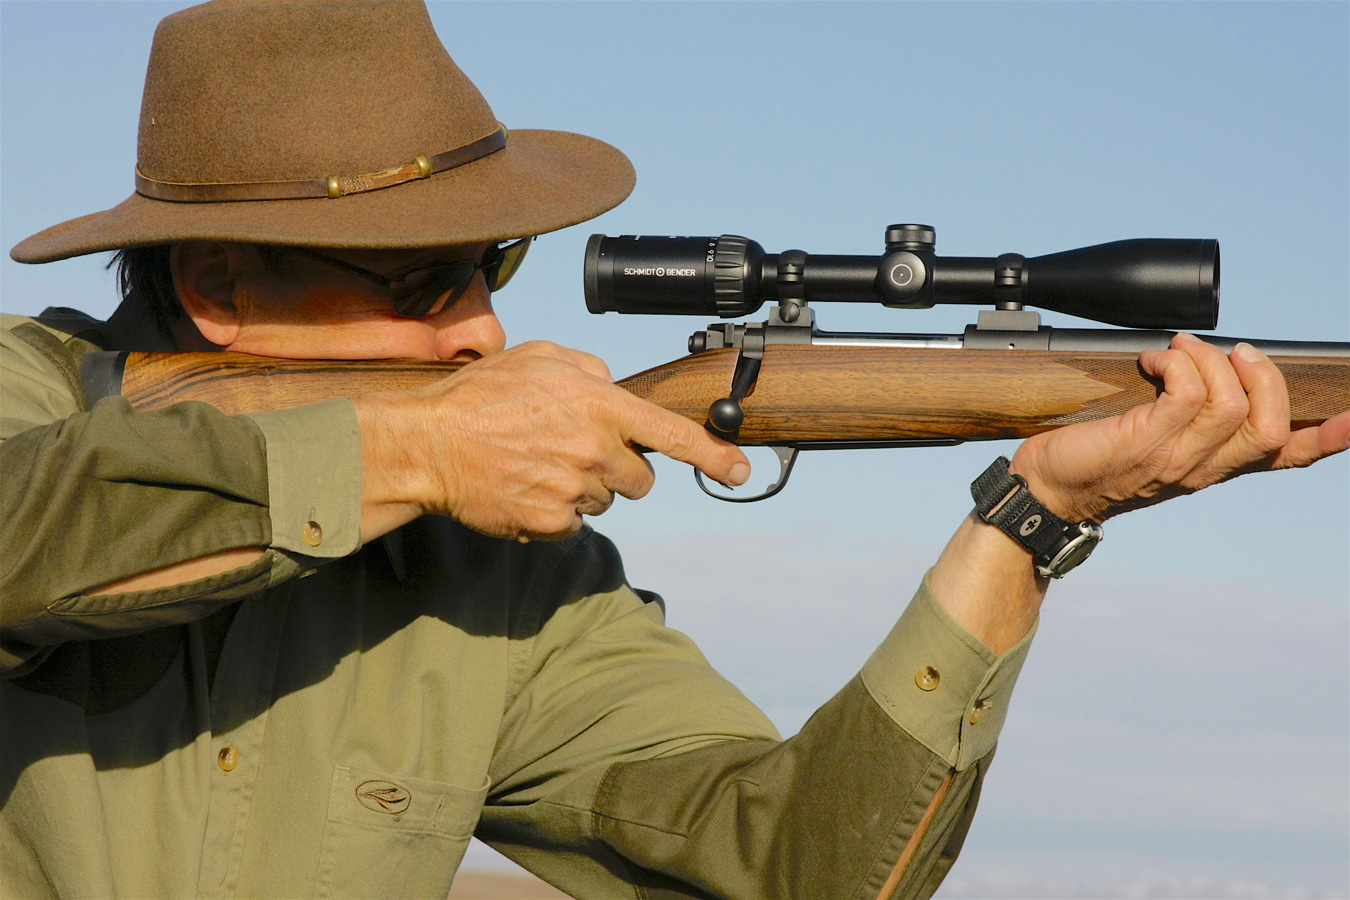 Ron Spomer shooting a rifle offhand